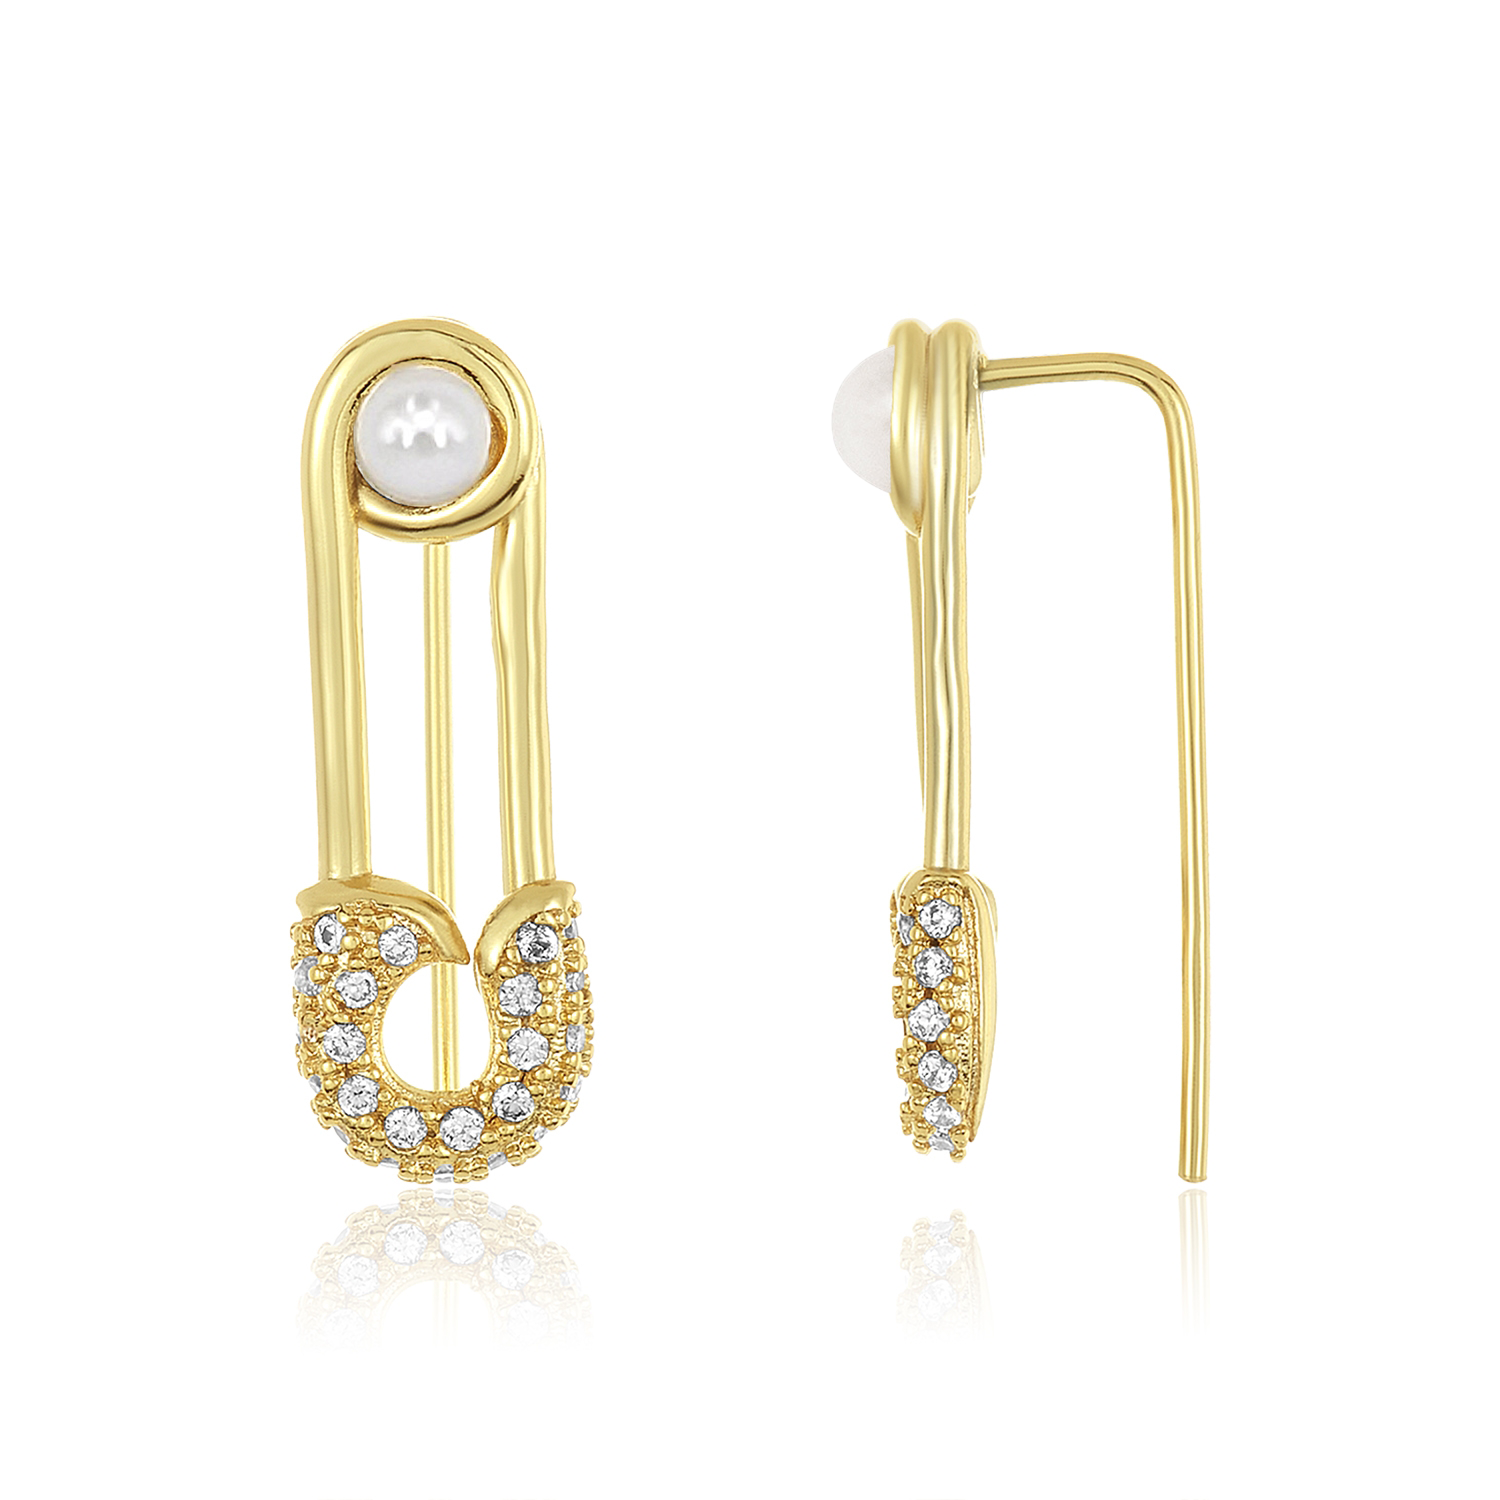 Safety Pin Ear Crawler Earring in 2020 Gold bridesmaid